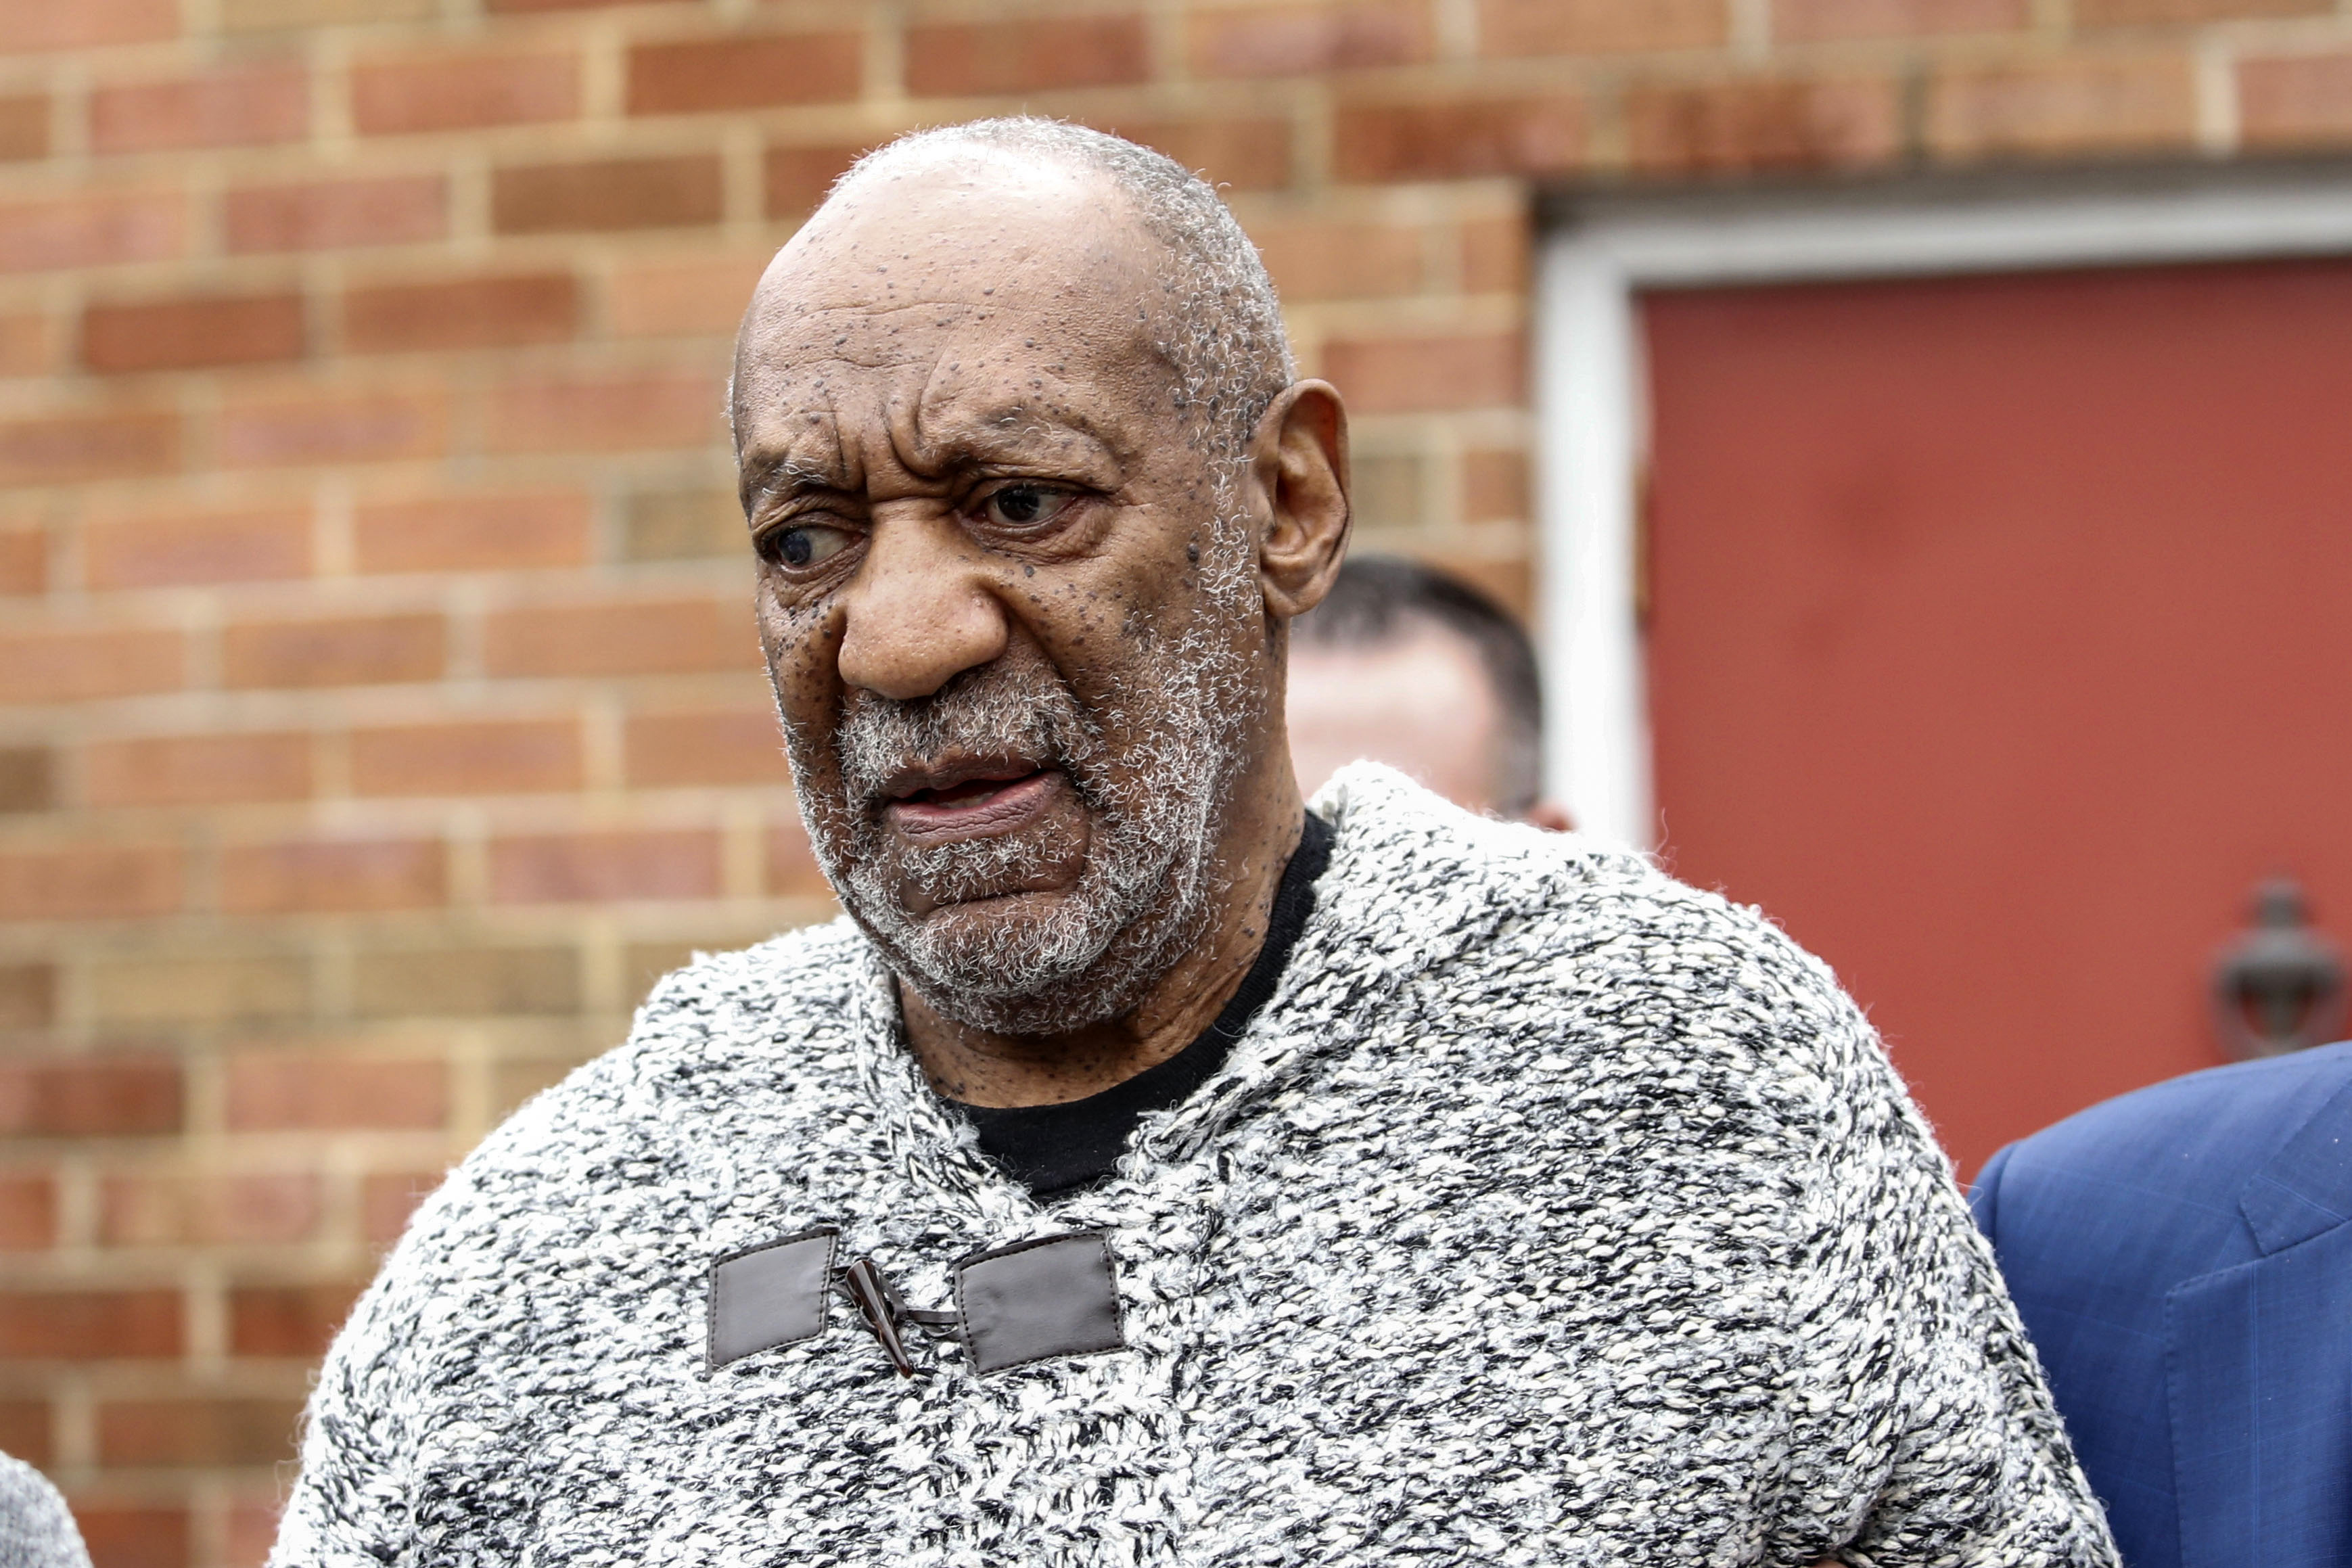 Comedian Bill Cosby leaves Dec. 30, 2015 the Court House in Elkins Park, Pennsylvania after arraignment on charges of aggravated indecent assault.